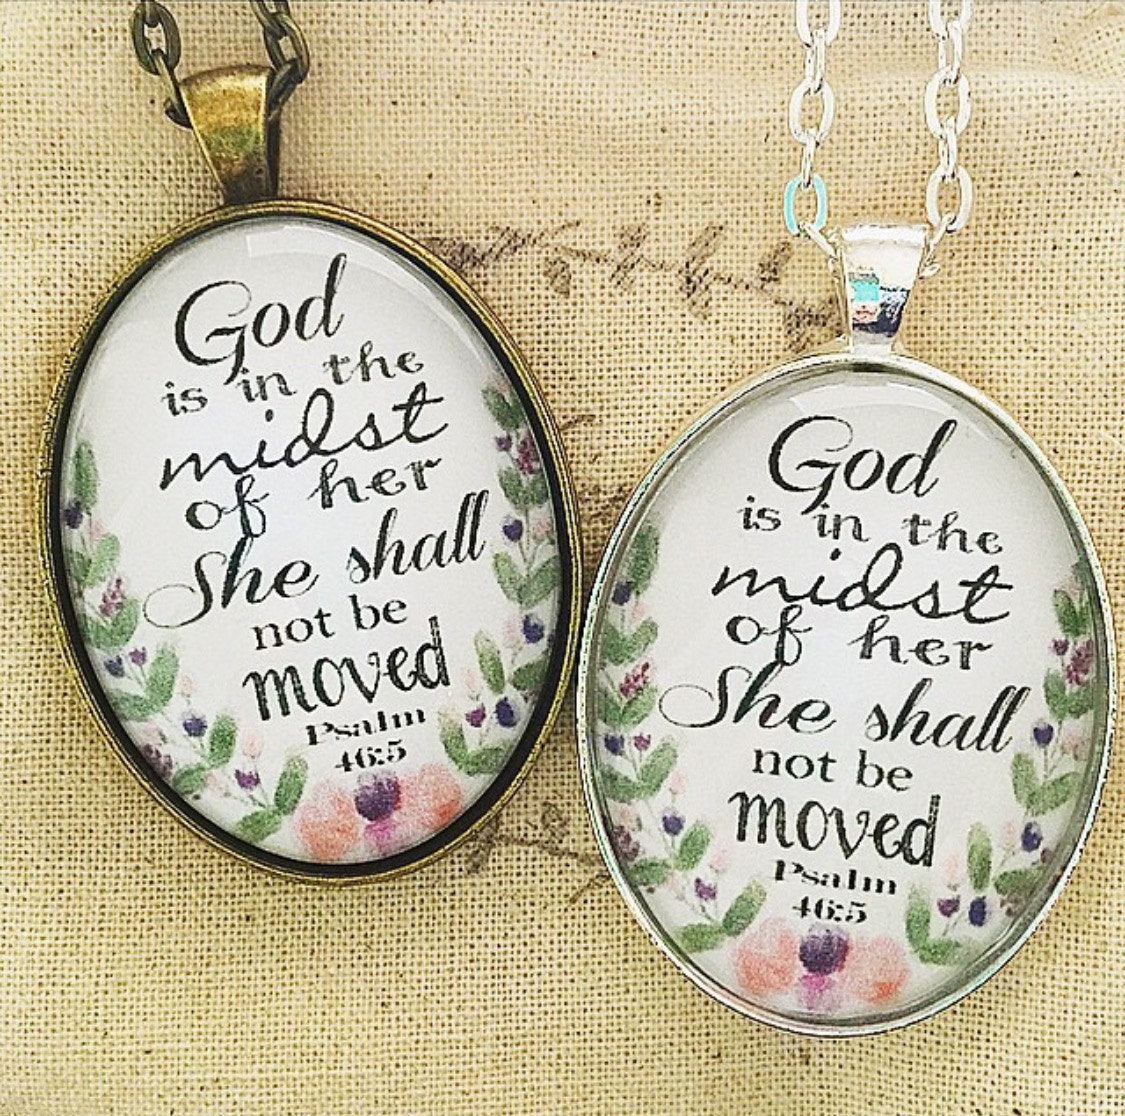 "Bible Verse Pendant Necklace ""God is in the midst of her, she shall not be moved. Psalm 46:5"" - Redeemed Jewelry"